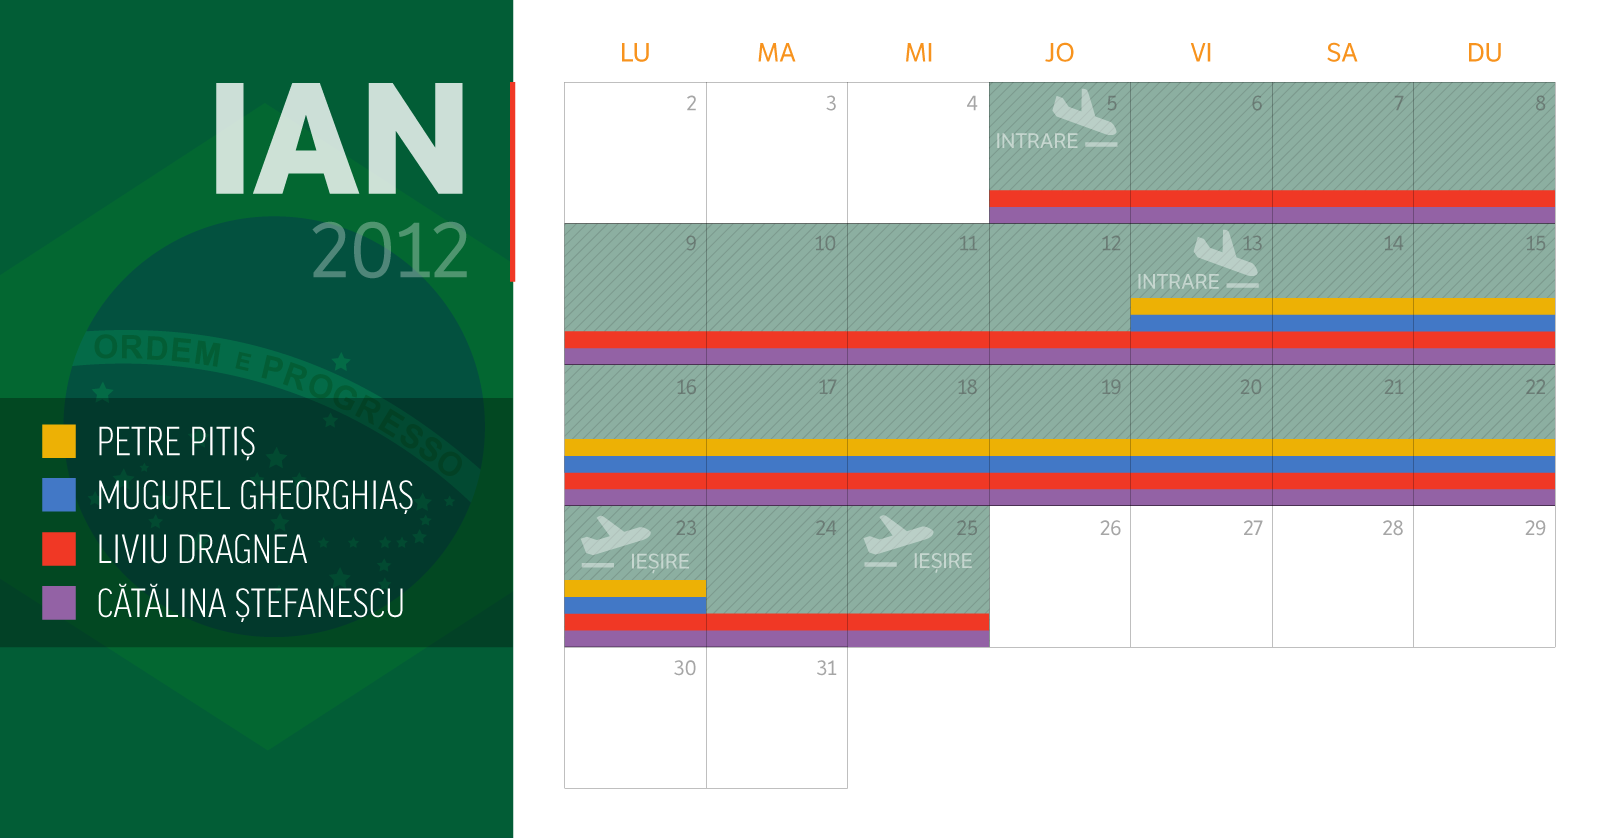 calendar_calatorii_brazilia_dragnea_teldrum_14_Ian_2012